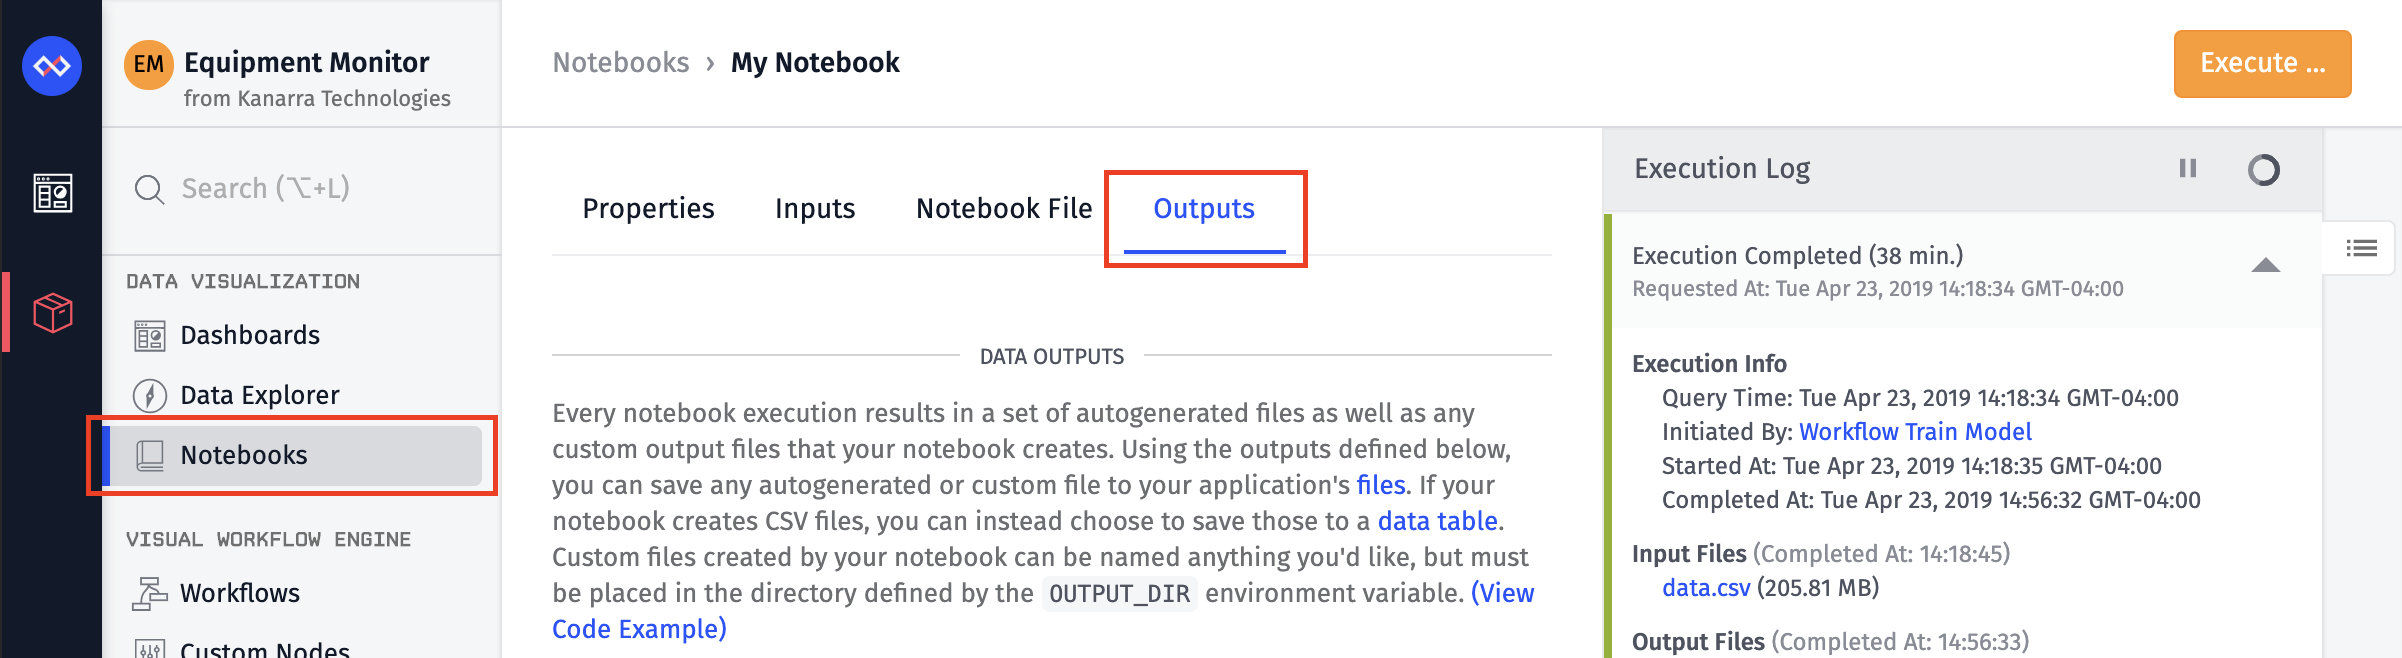 Notebook Outputs Overview